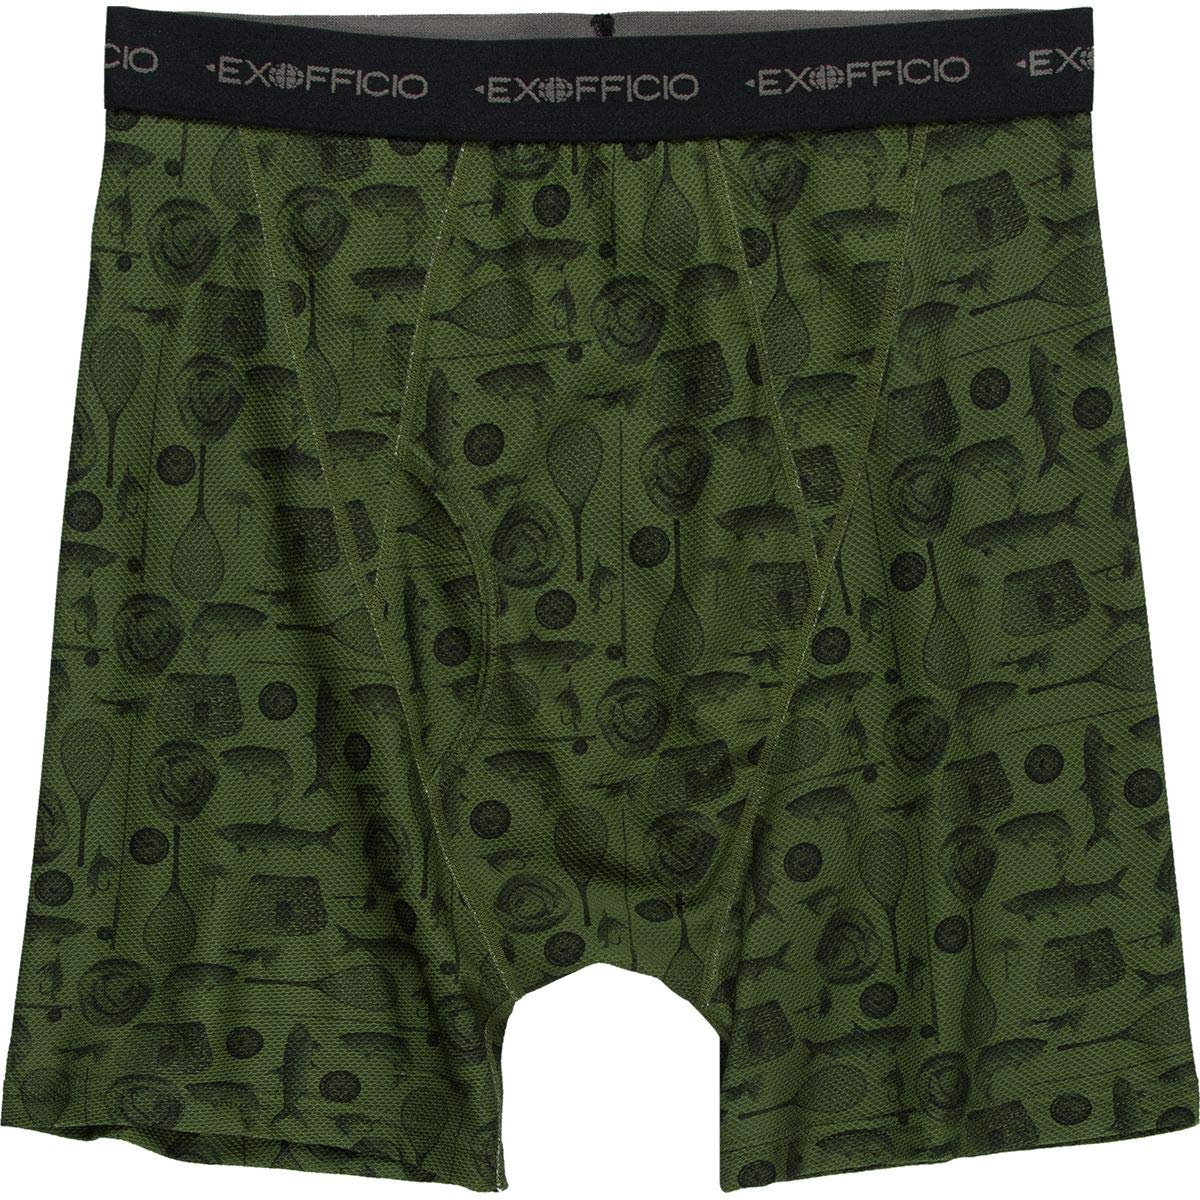 ExOfficio Give-N-Go Printed Boxer Brief - Men's Alpine Green Fly Fishing, M by ExOfficio